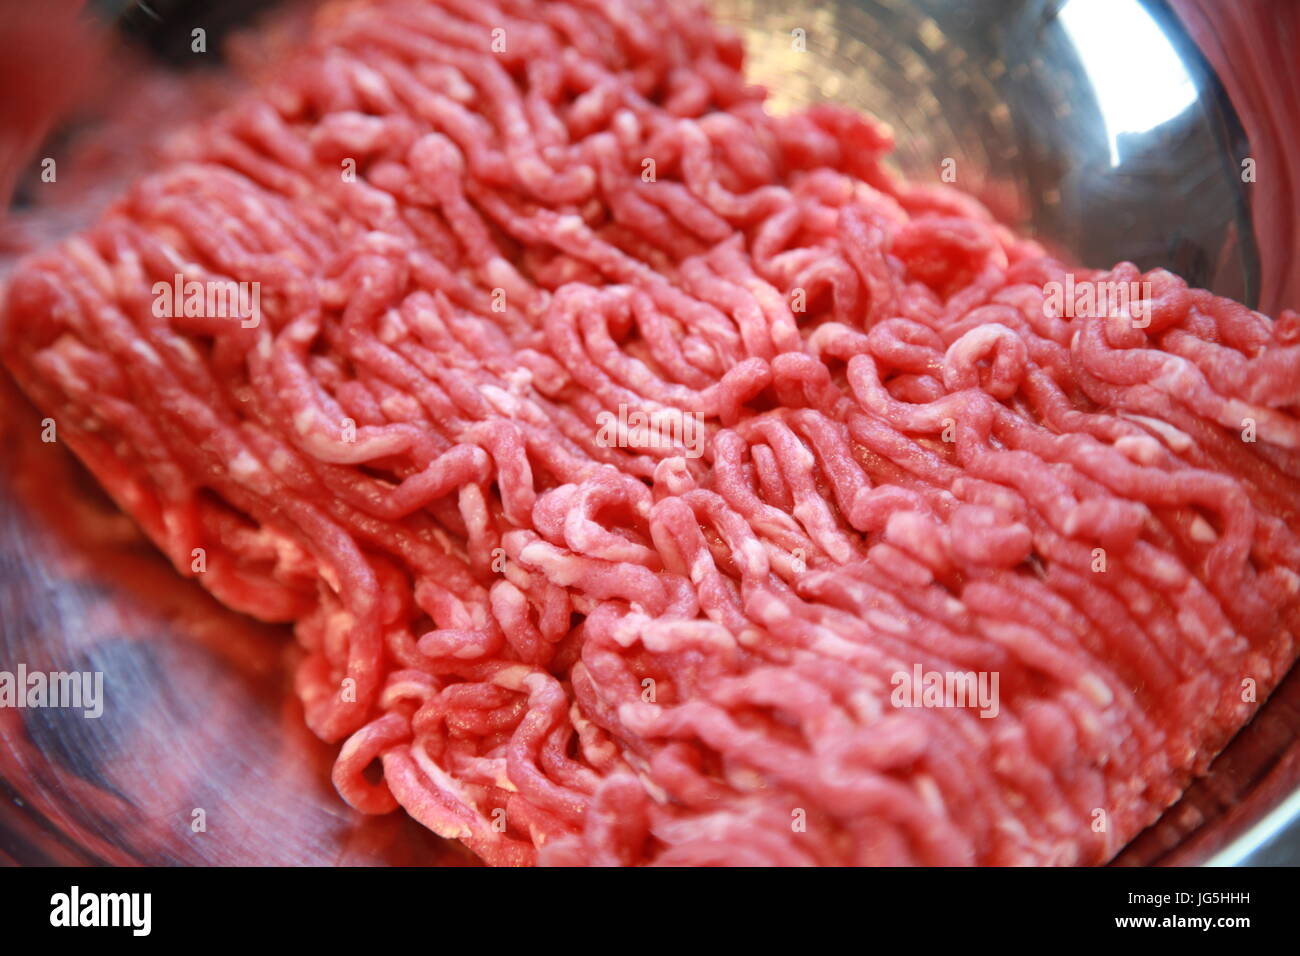 minced stake, cooking ingredients - Stock Image